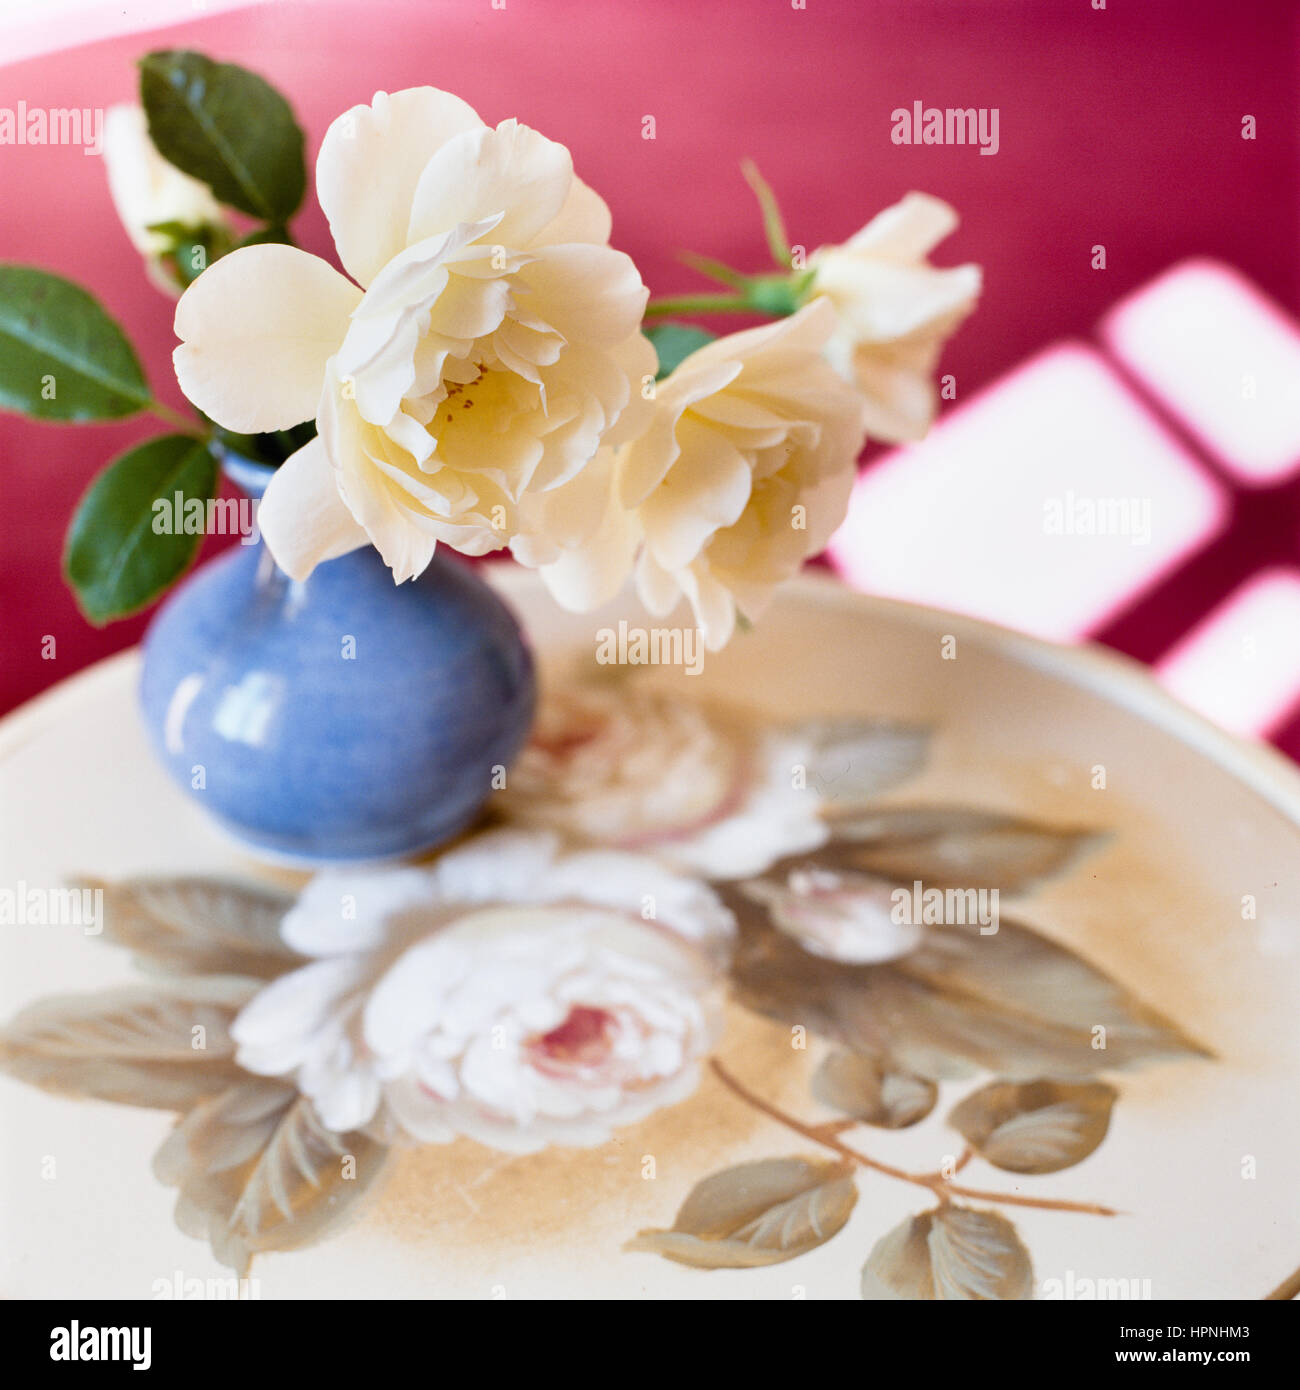 A vase of flowers on a plate. - Stock Image